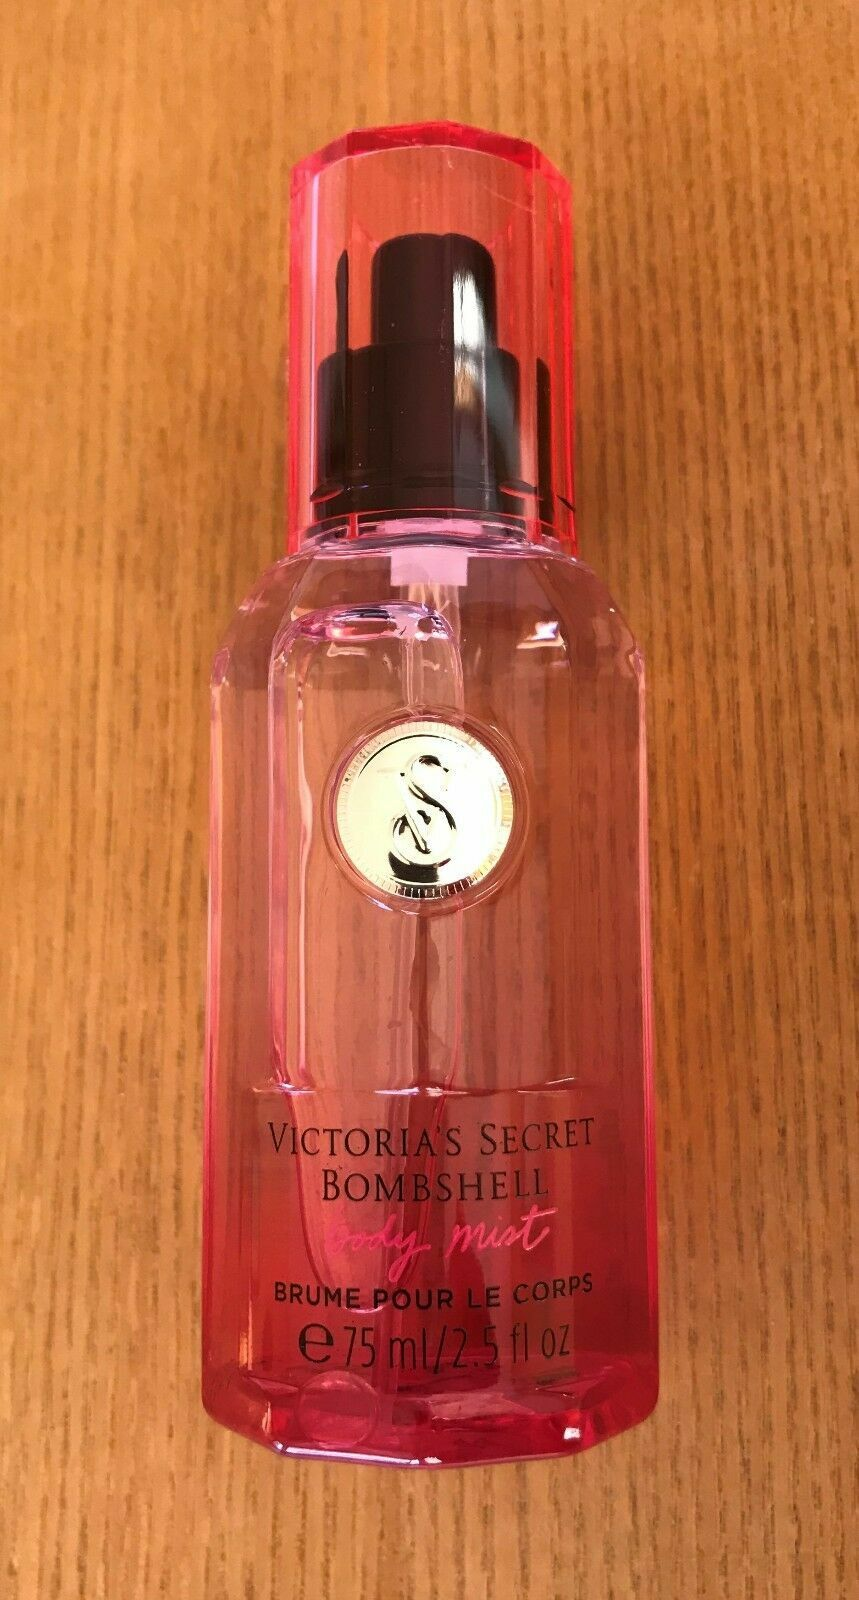 Victoria's Secret Bombshell Body Mist 2.5oz Travel Size